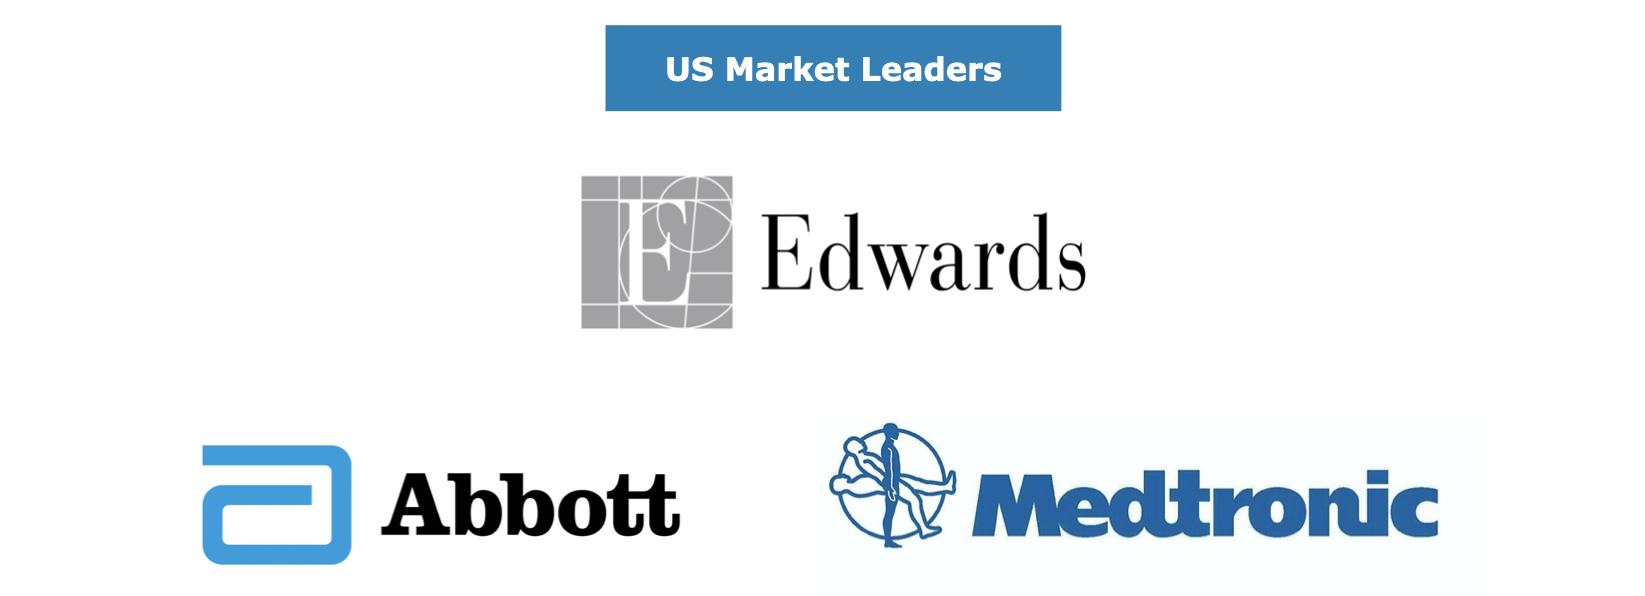 US Cardiac Surgery Market Share Leaders